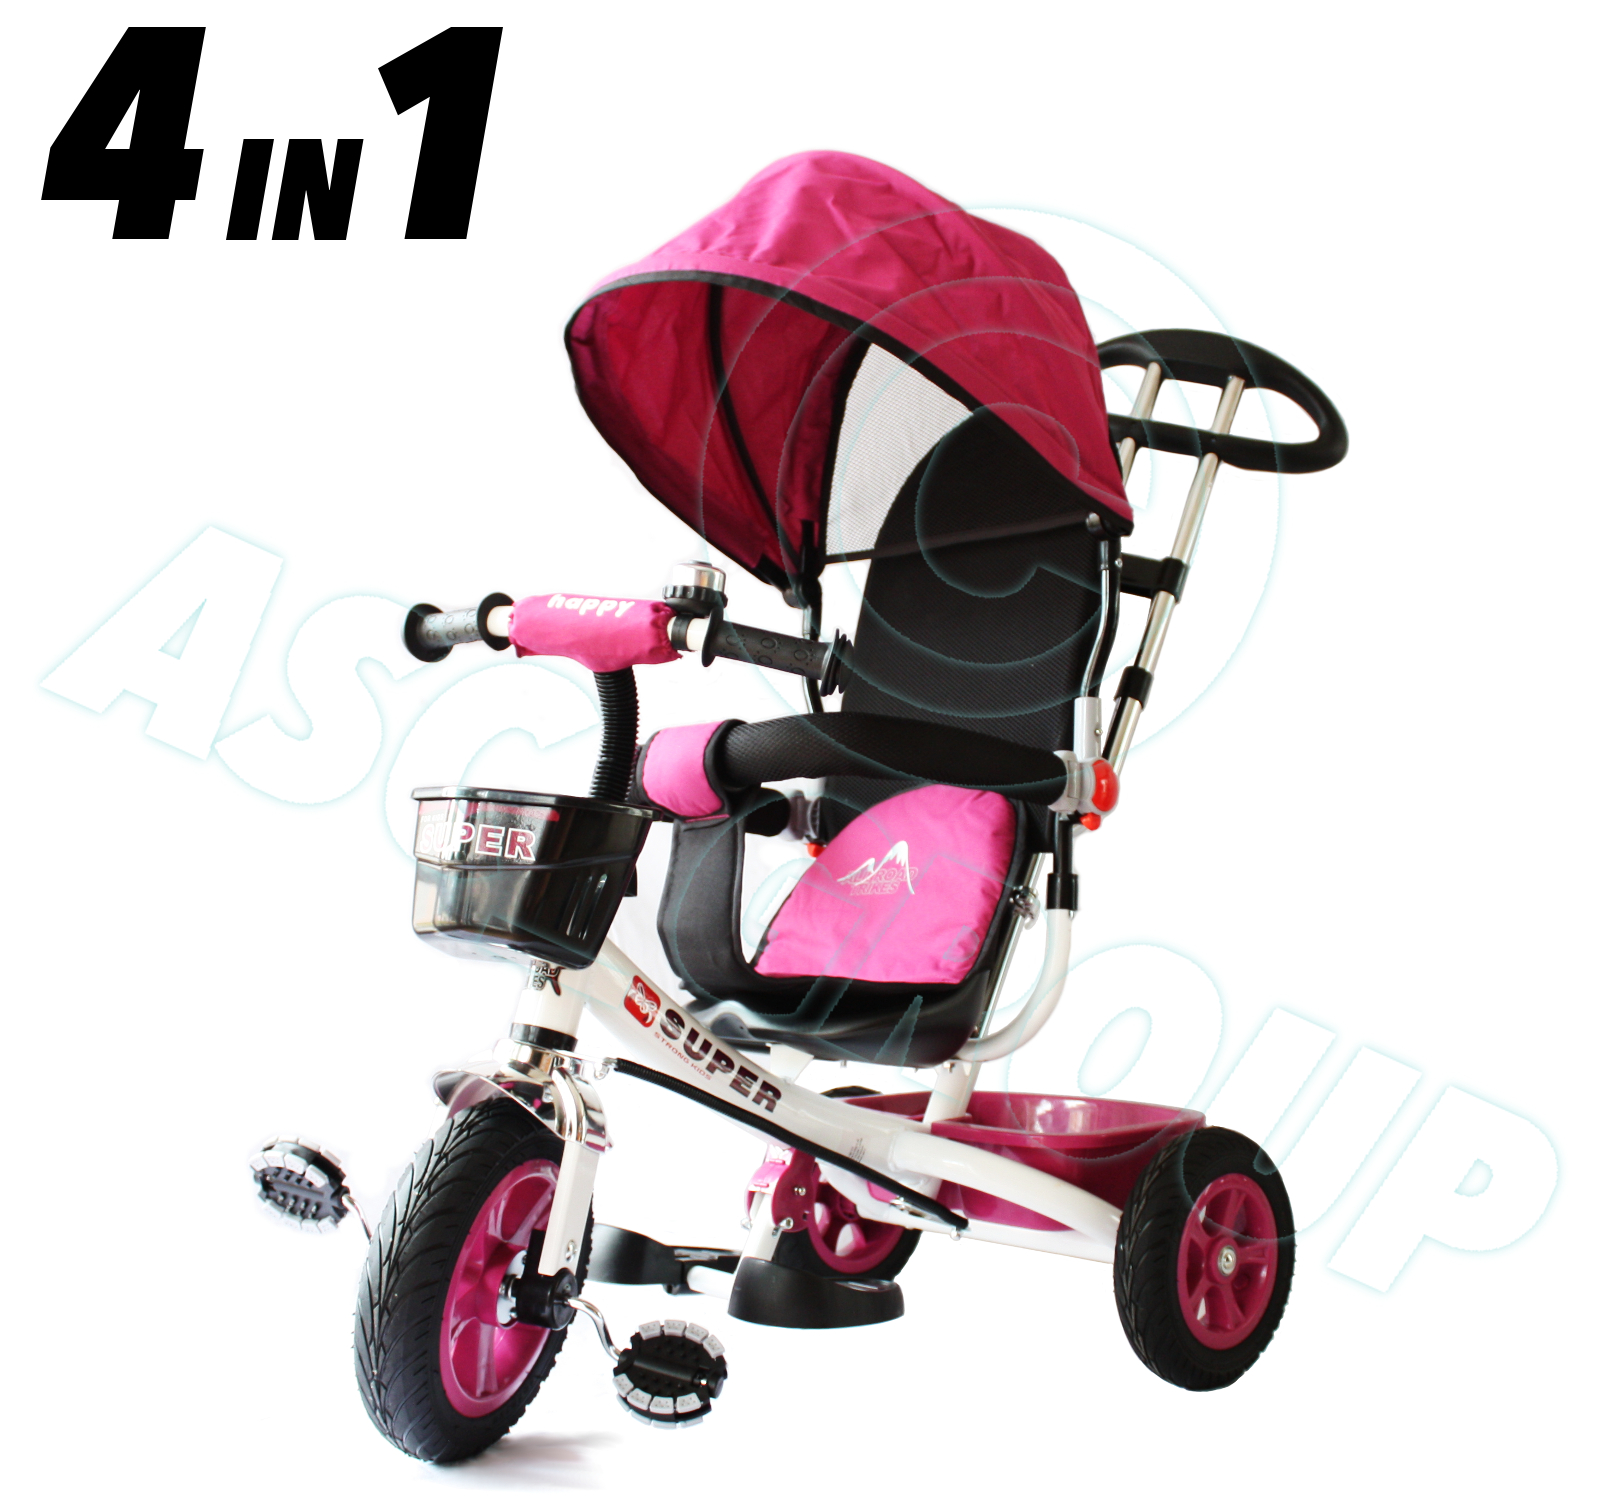 White Amp Pink 4in1 Trike Push Along Children Kids Ride On